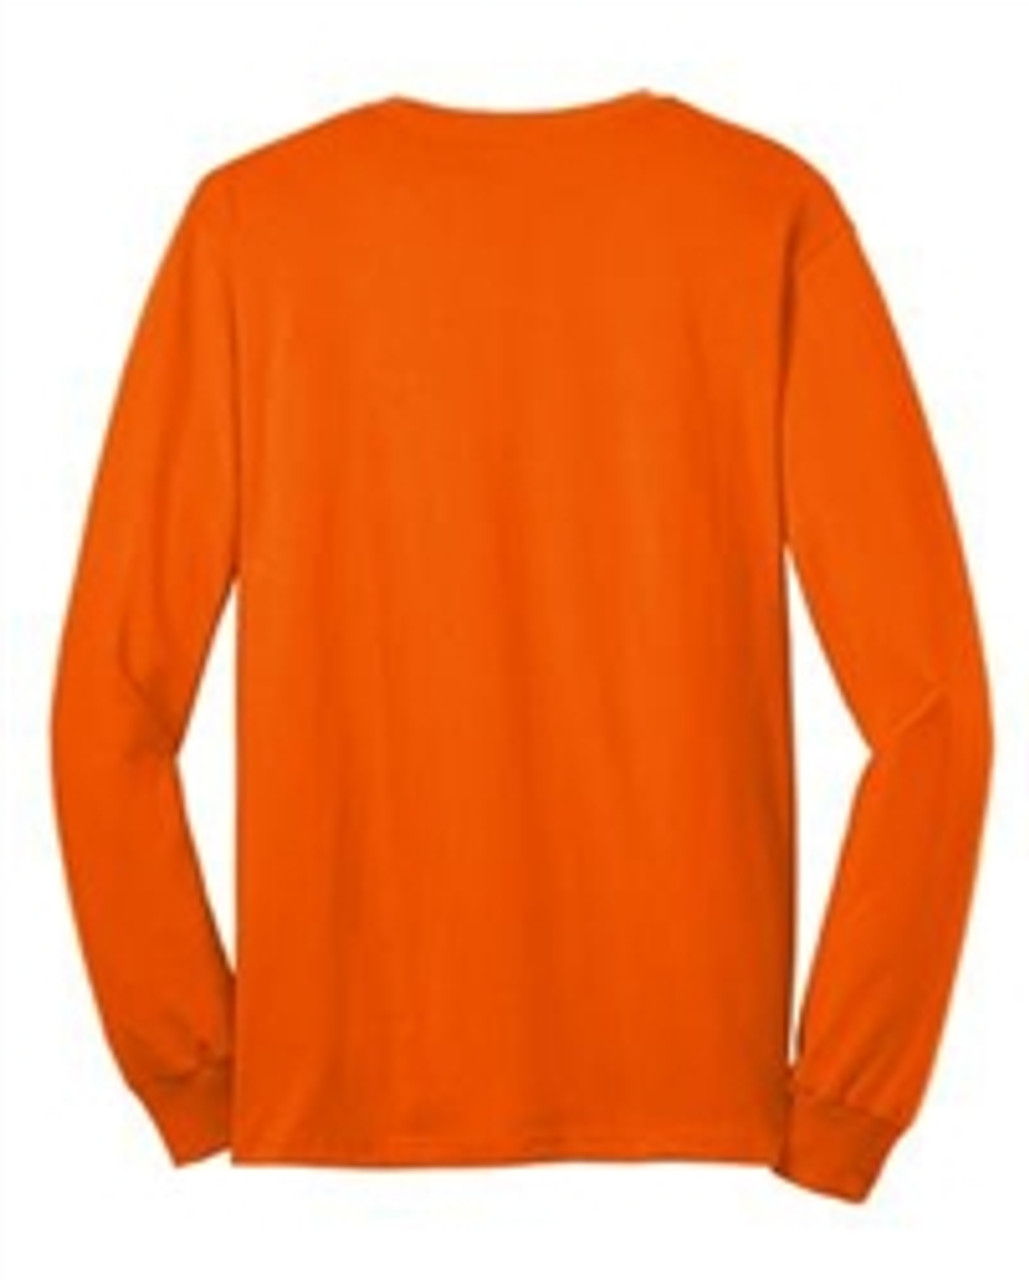 Bright Orange Long Sleeve T-Shirt - 50/50 Cotton/Poly (Preshrunk) USA MADE *Custom Printing Available*